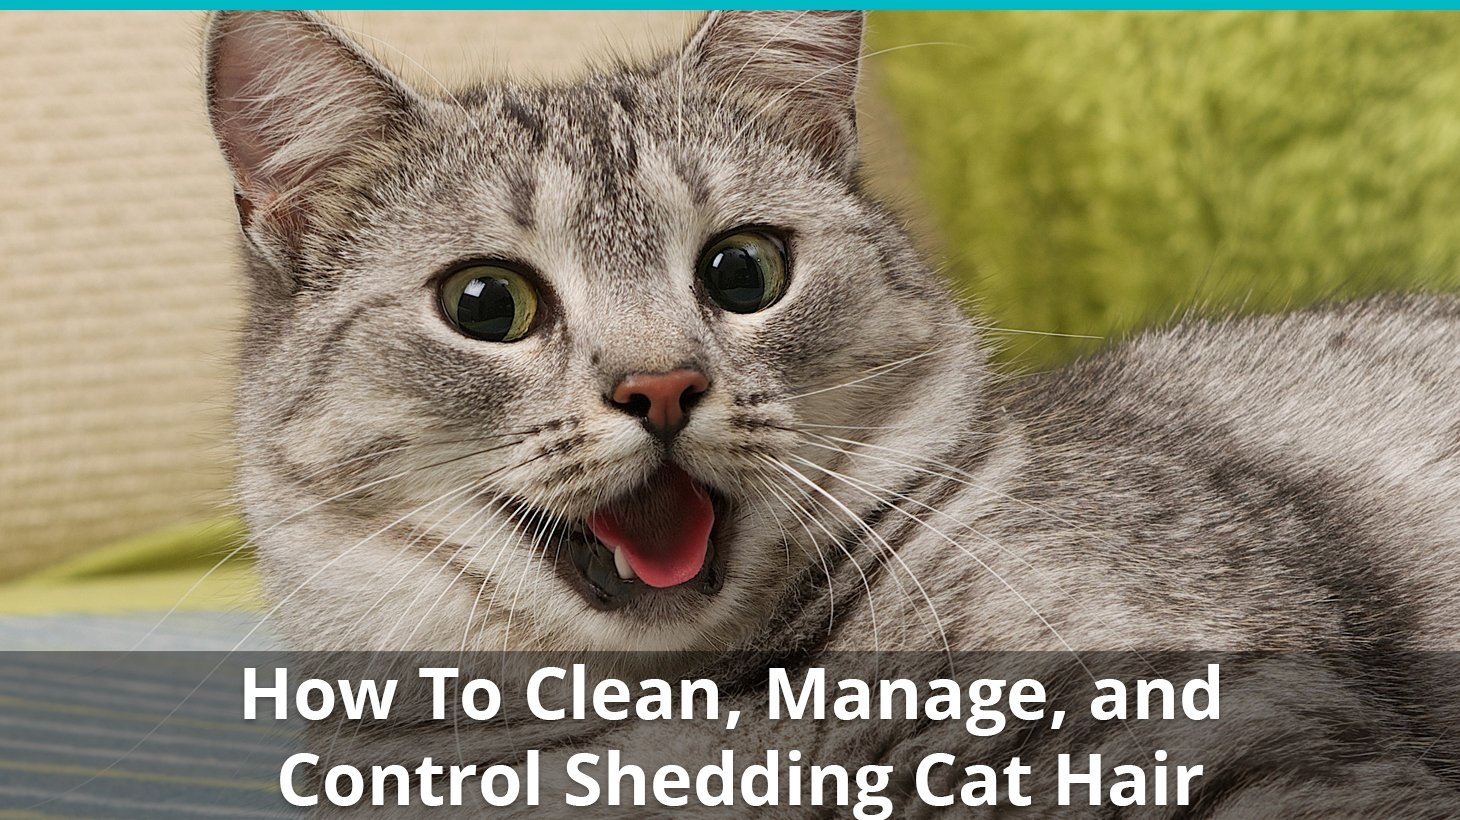 How To Stop Cat Hair From Getting Everywhere